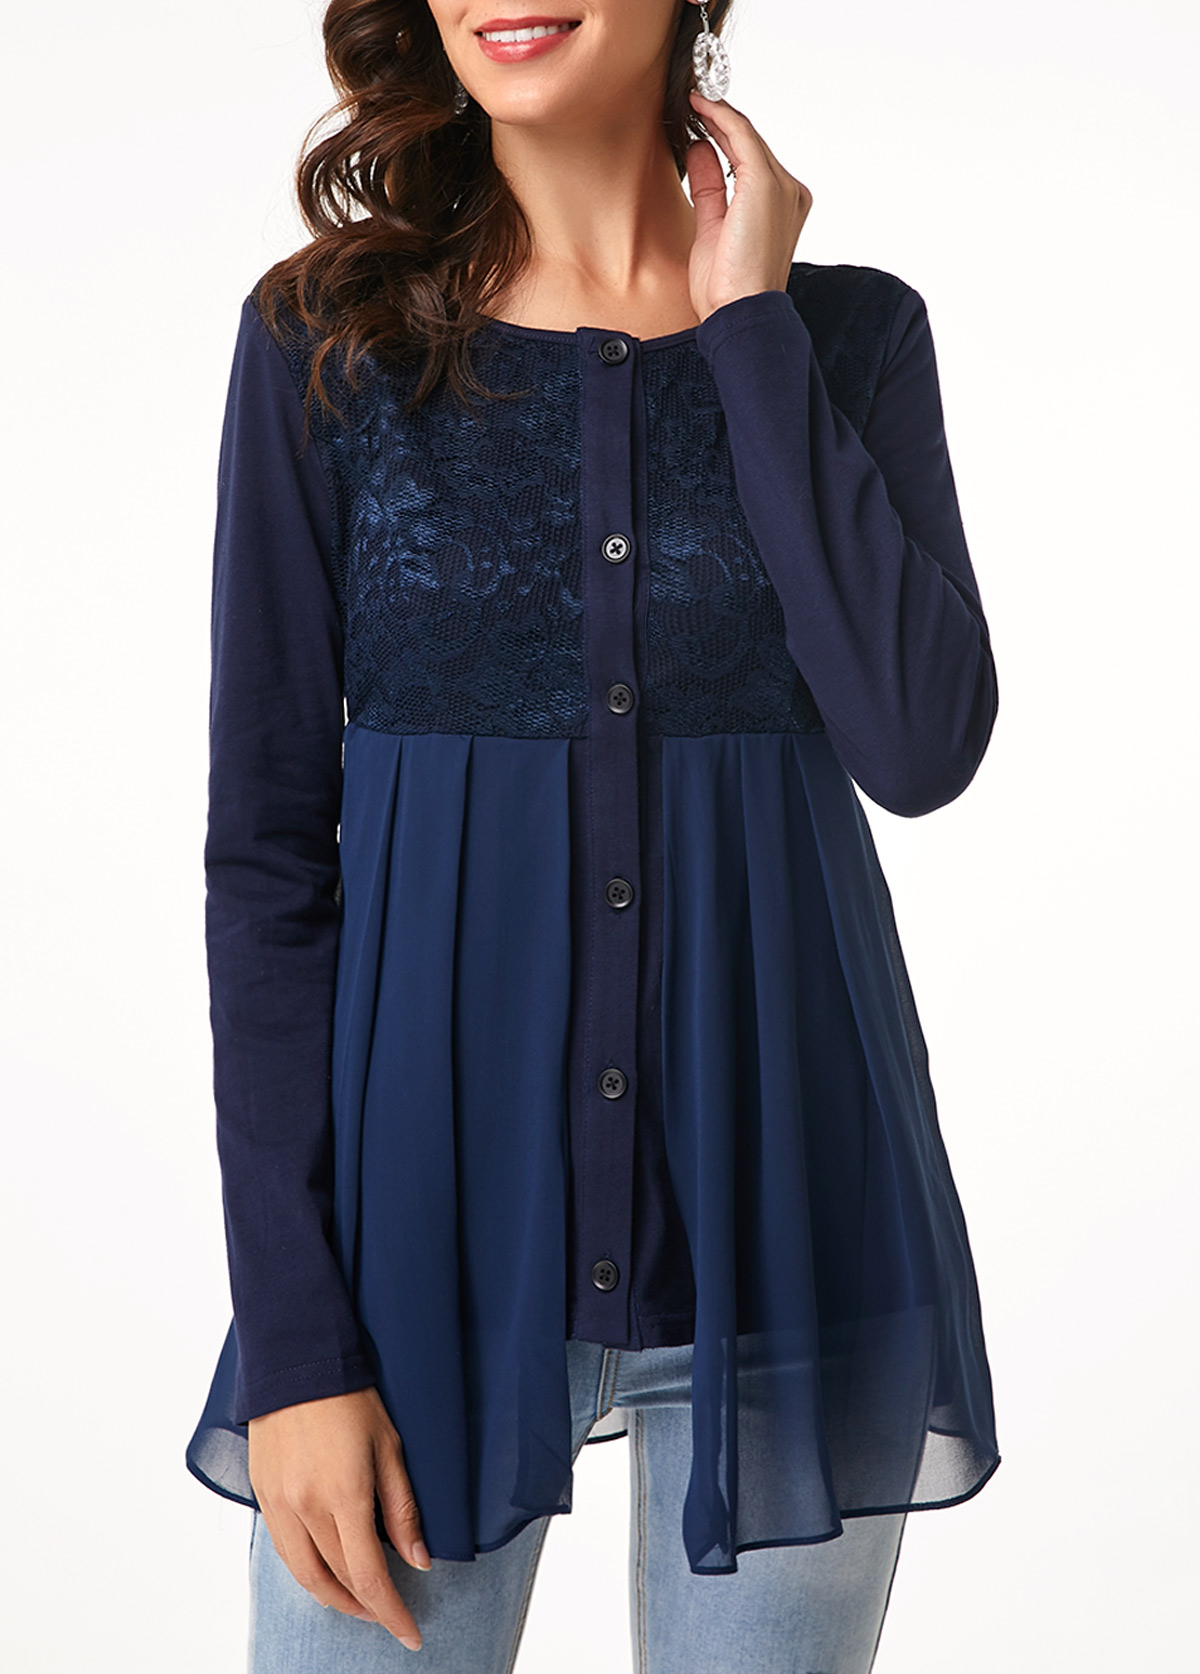 Lace Patchwork Long Sleeve Button Up Blouse